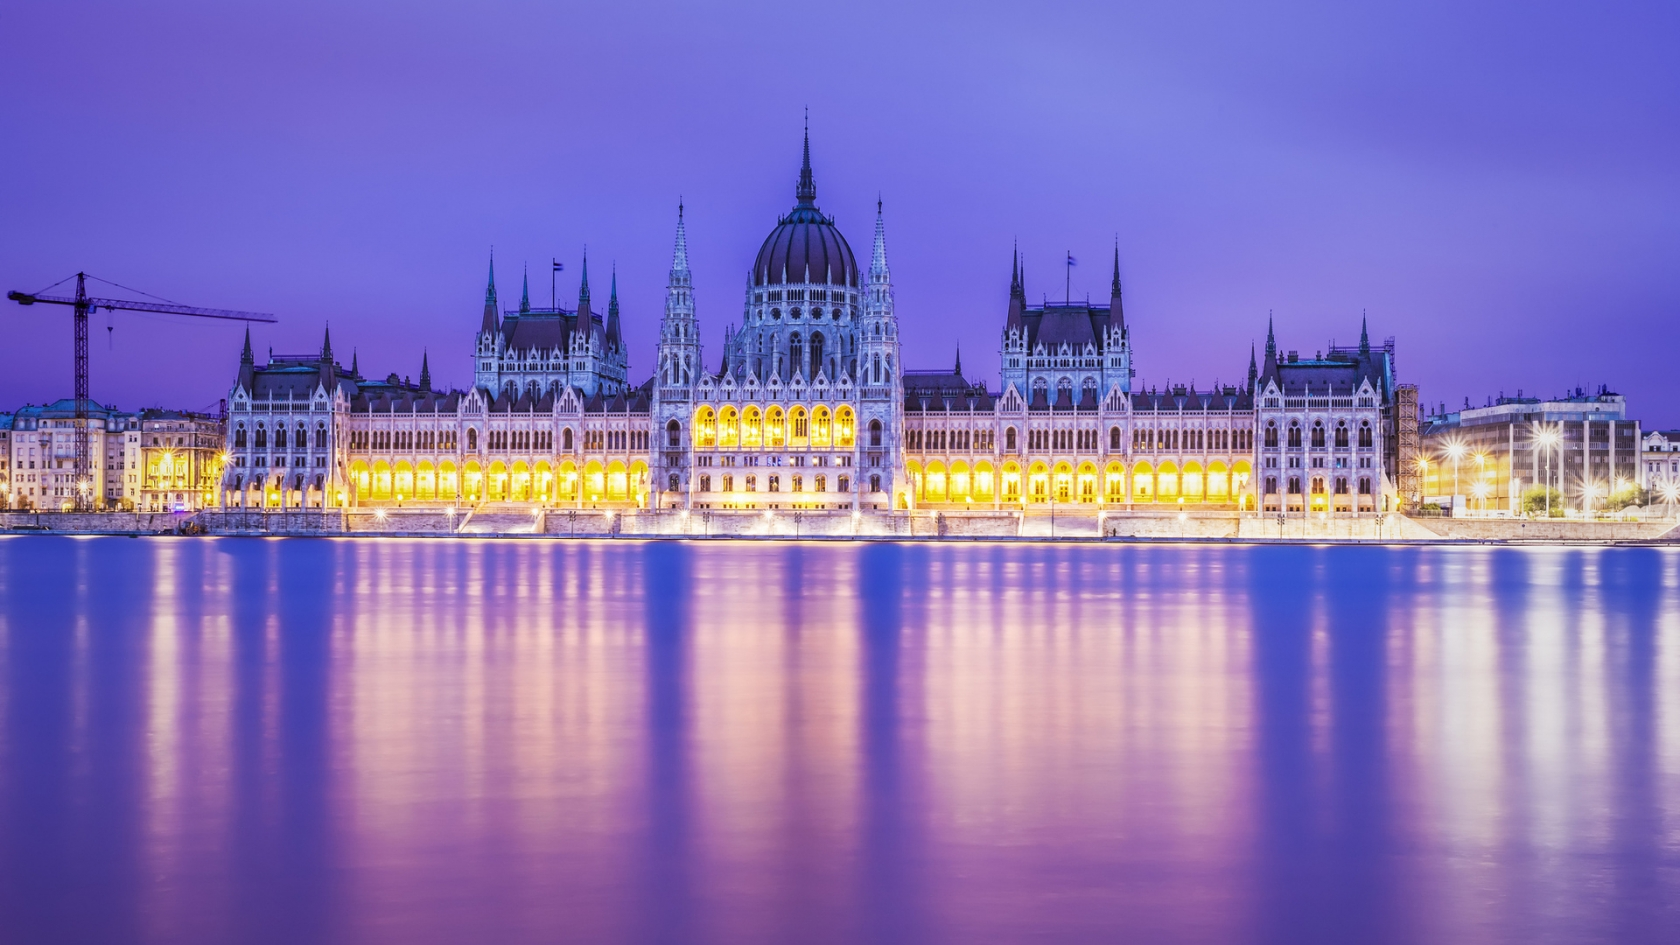 Budapest Parliament Building for 1680 x 945 HDTV resolution